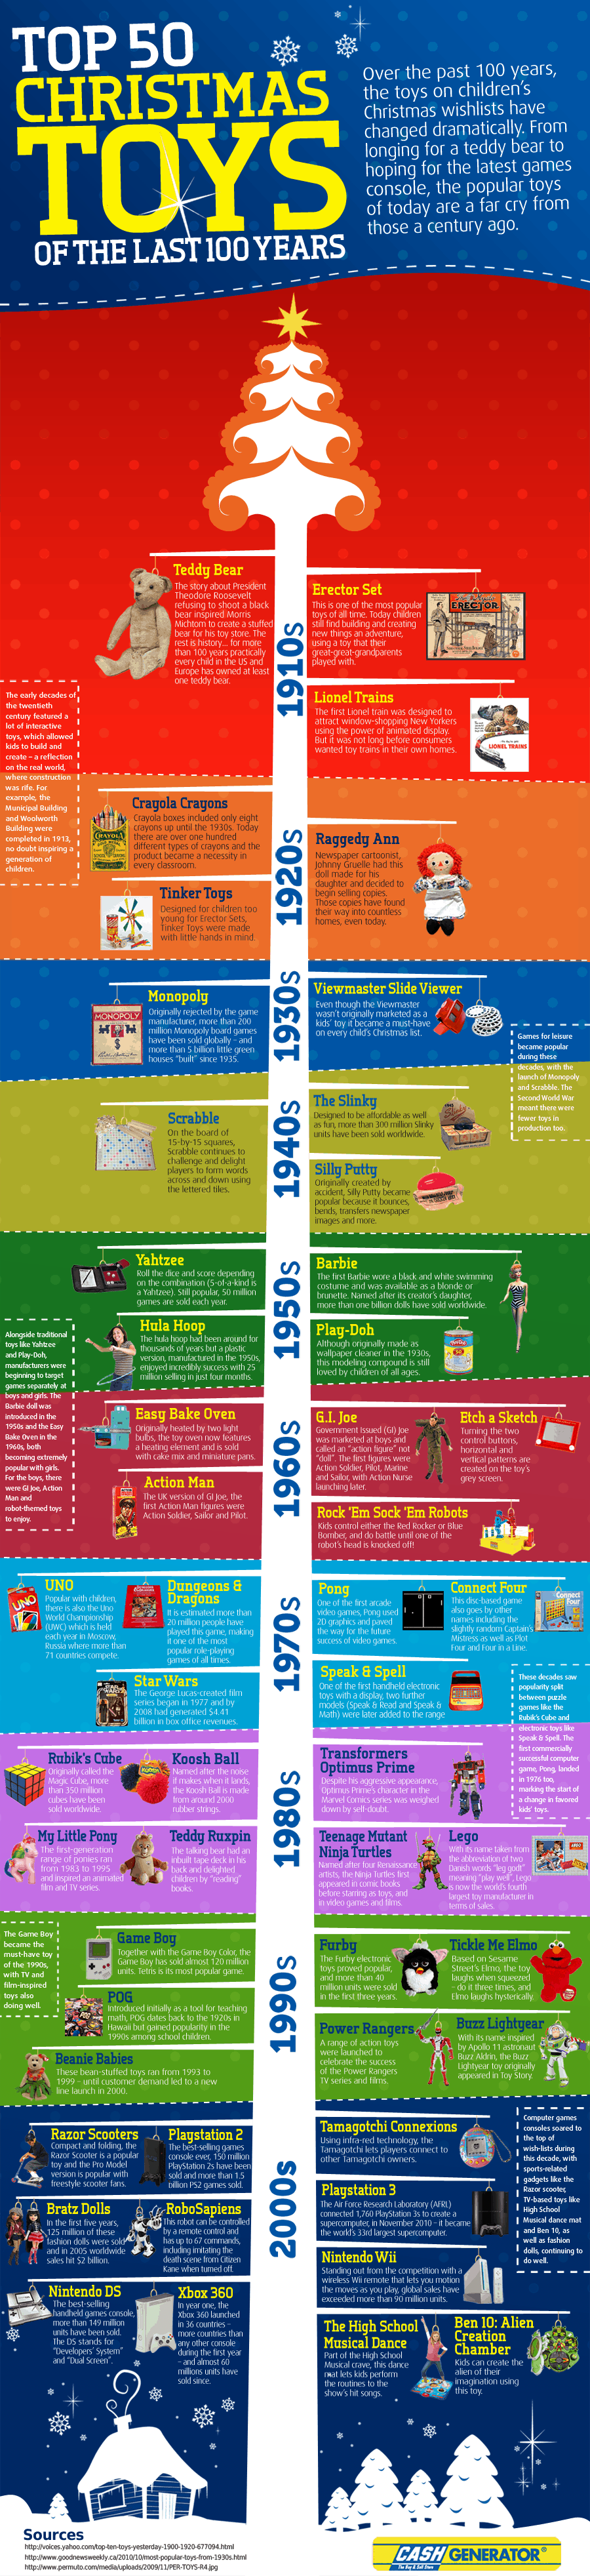 top 50 christmas toys of the past century